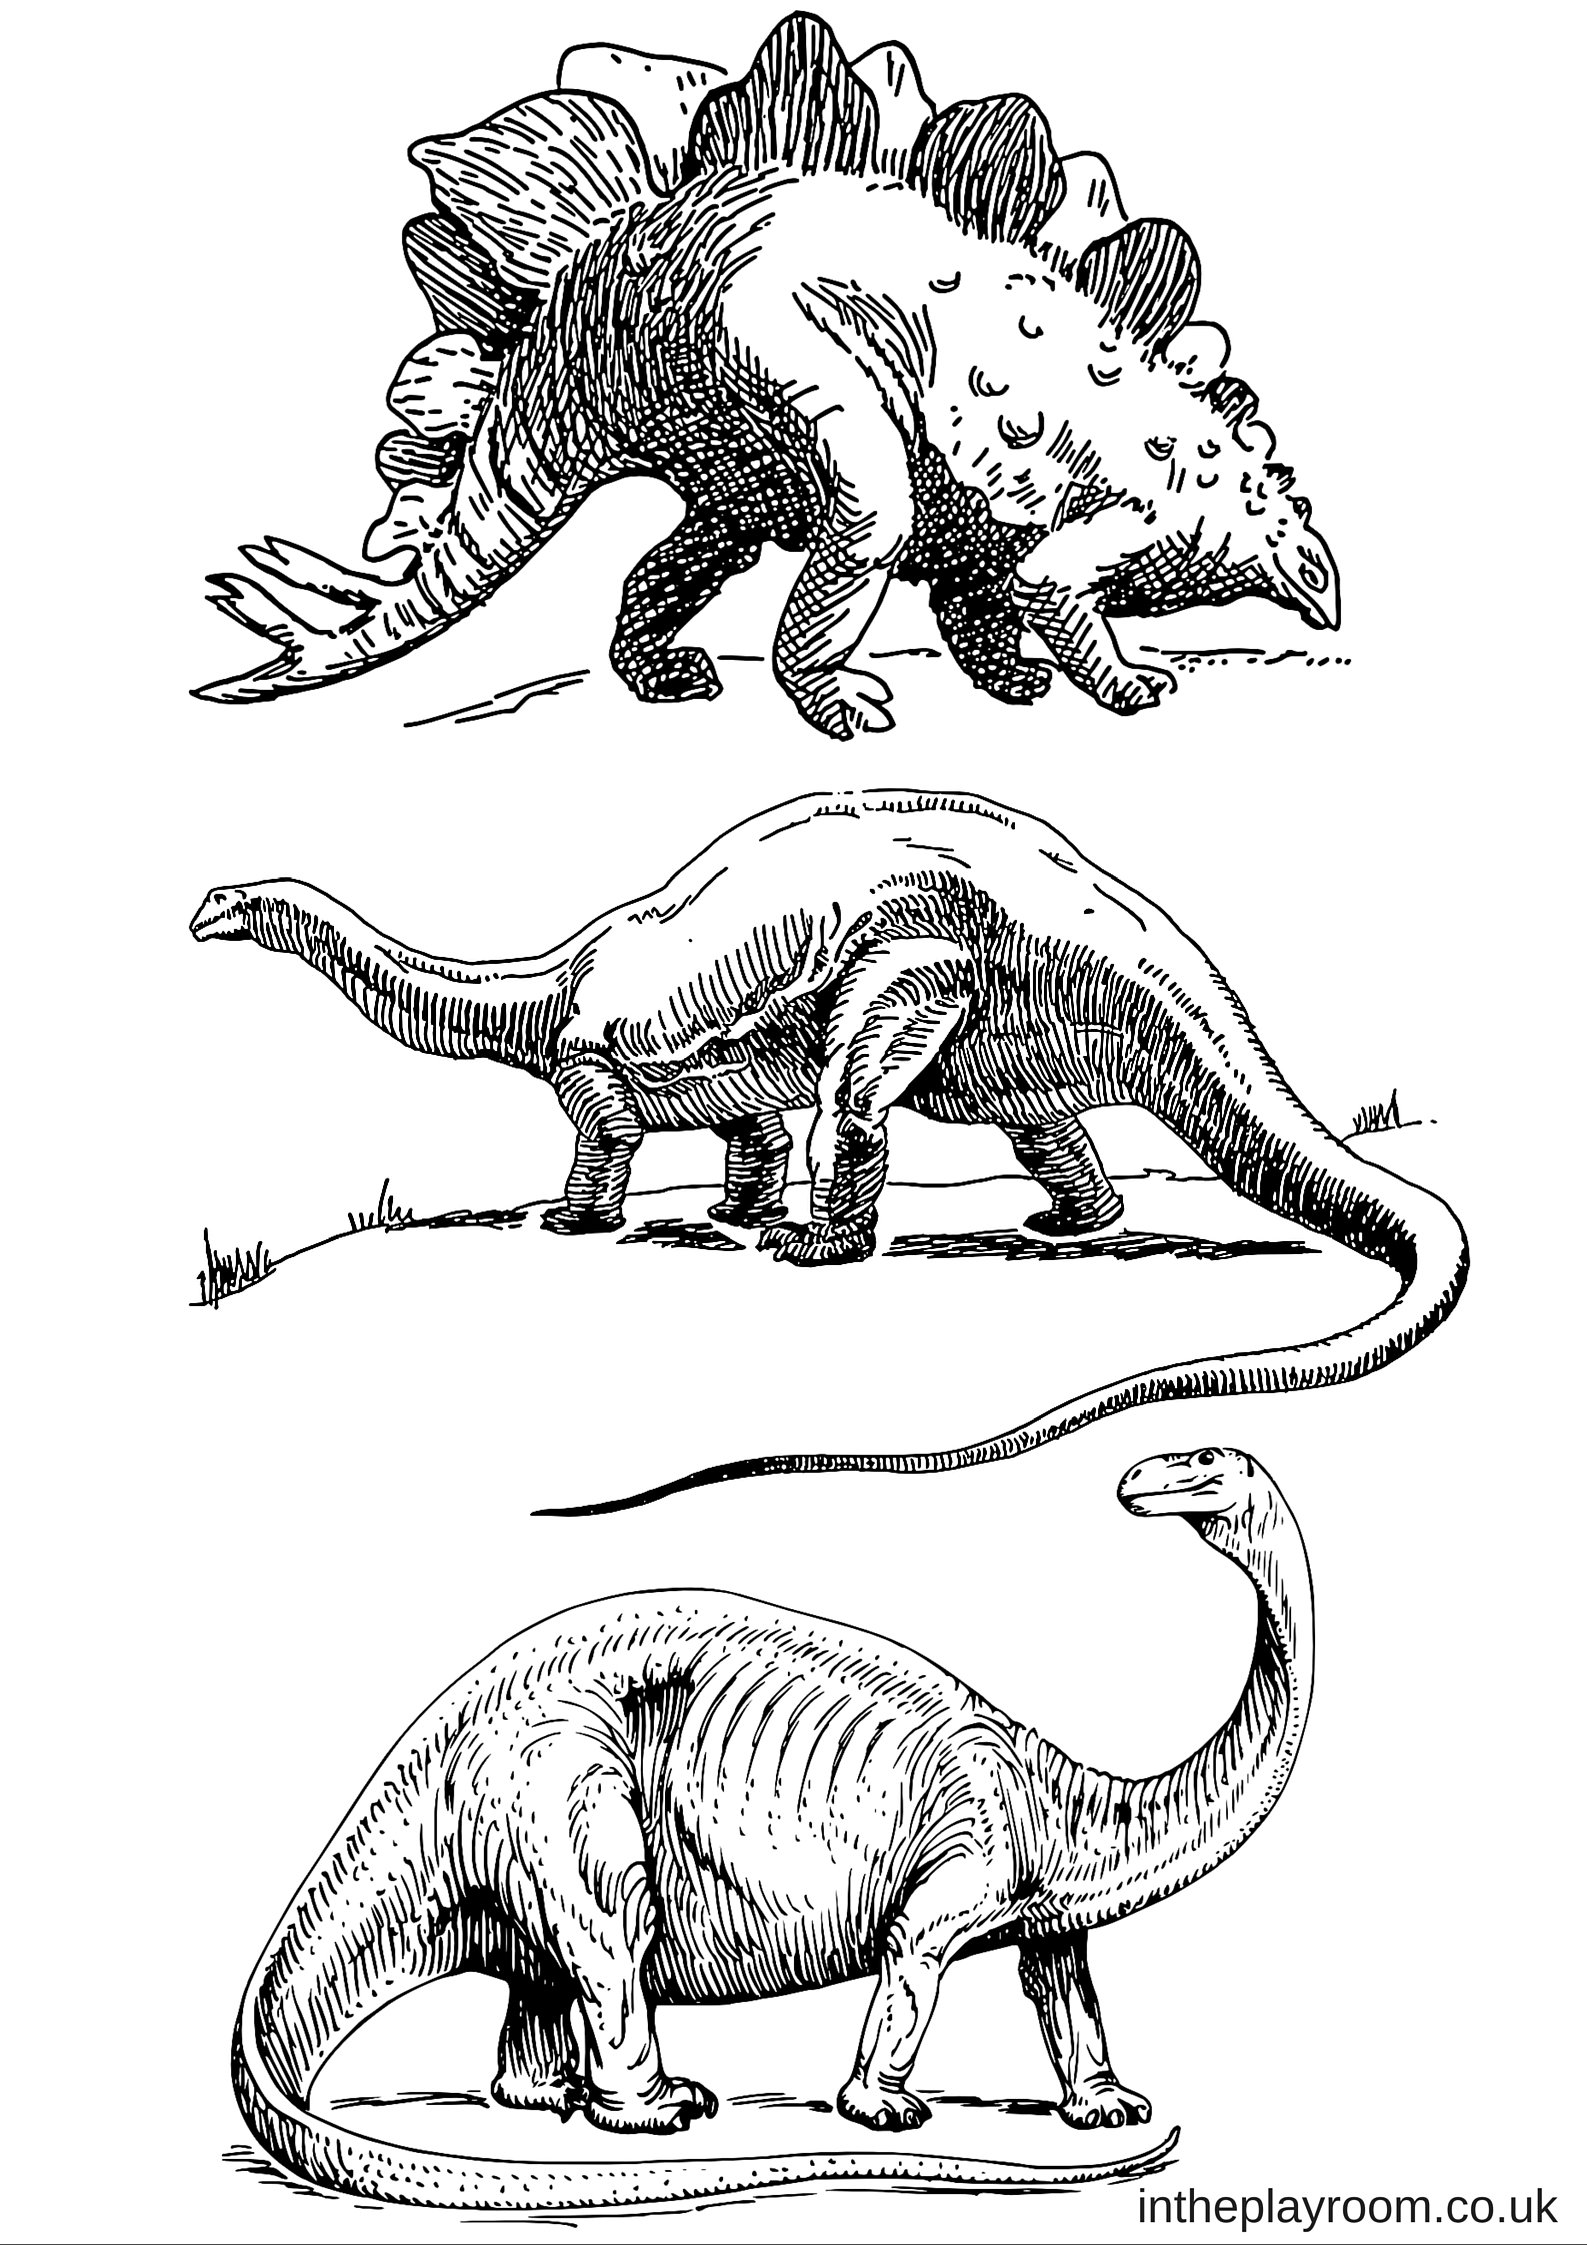 dinosaurs color pages dinosaurs to color for kids ba dinosaurs kids coloring dinosaurs color pages